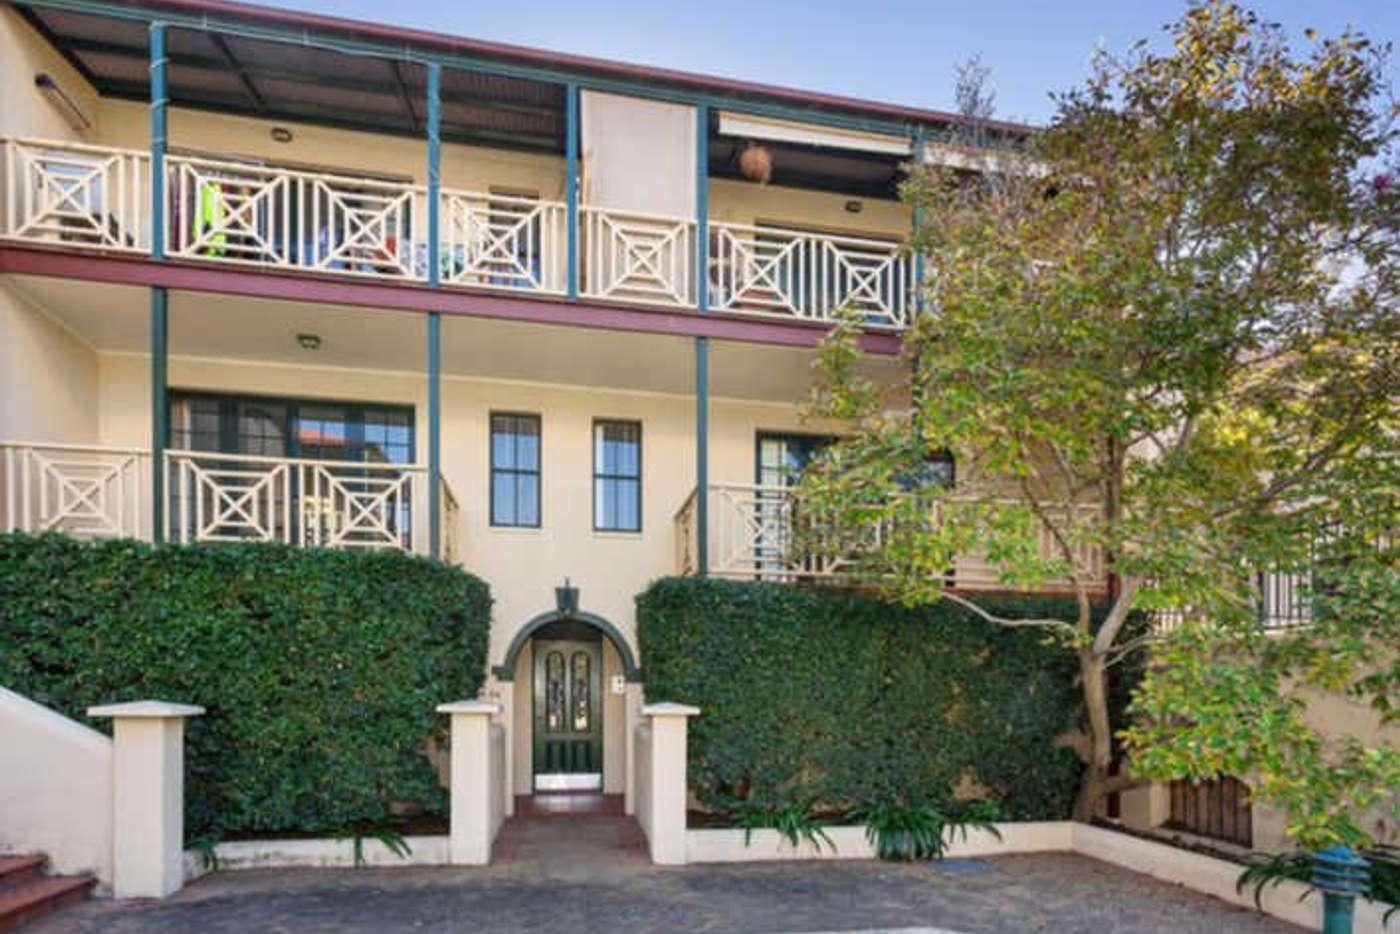 Main view of Homely unit listing, 10/38 Cooyong Crescent, Toongabbie NSW 2146